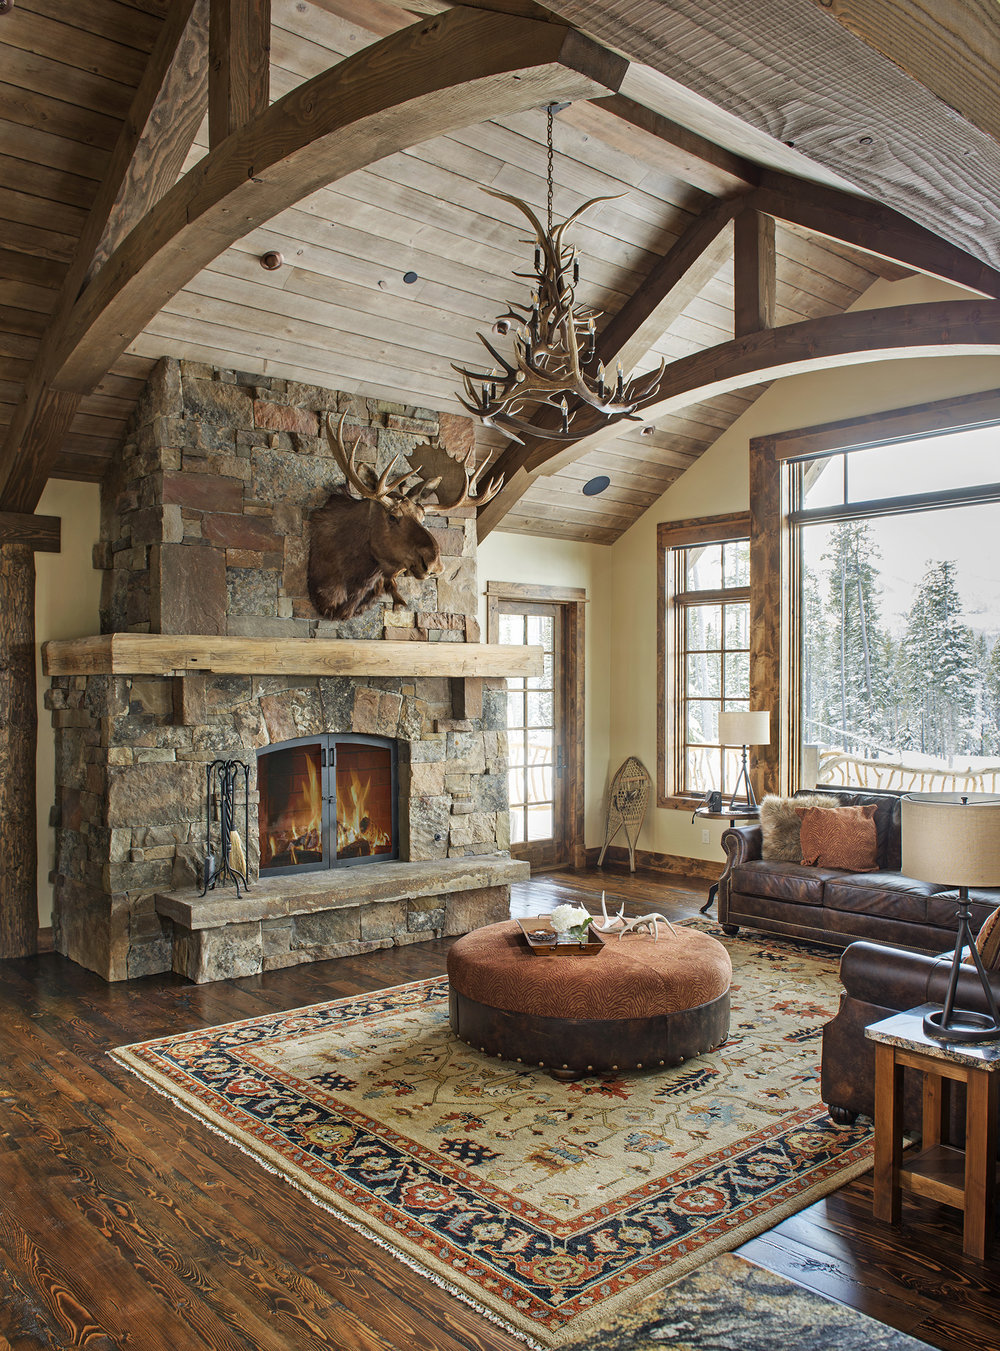 The fireplace, wood paneling on the ceiling, and the animal antler decor that adds to the rustic feel.  Architect -  Centre Sky Architecture  . Builder -  Dovetail Construction